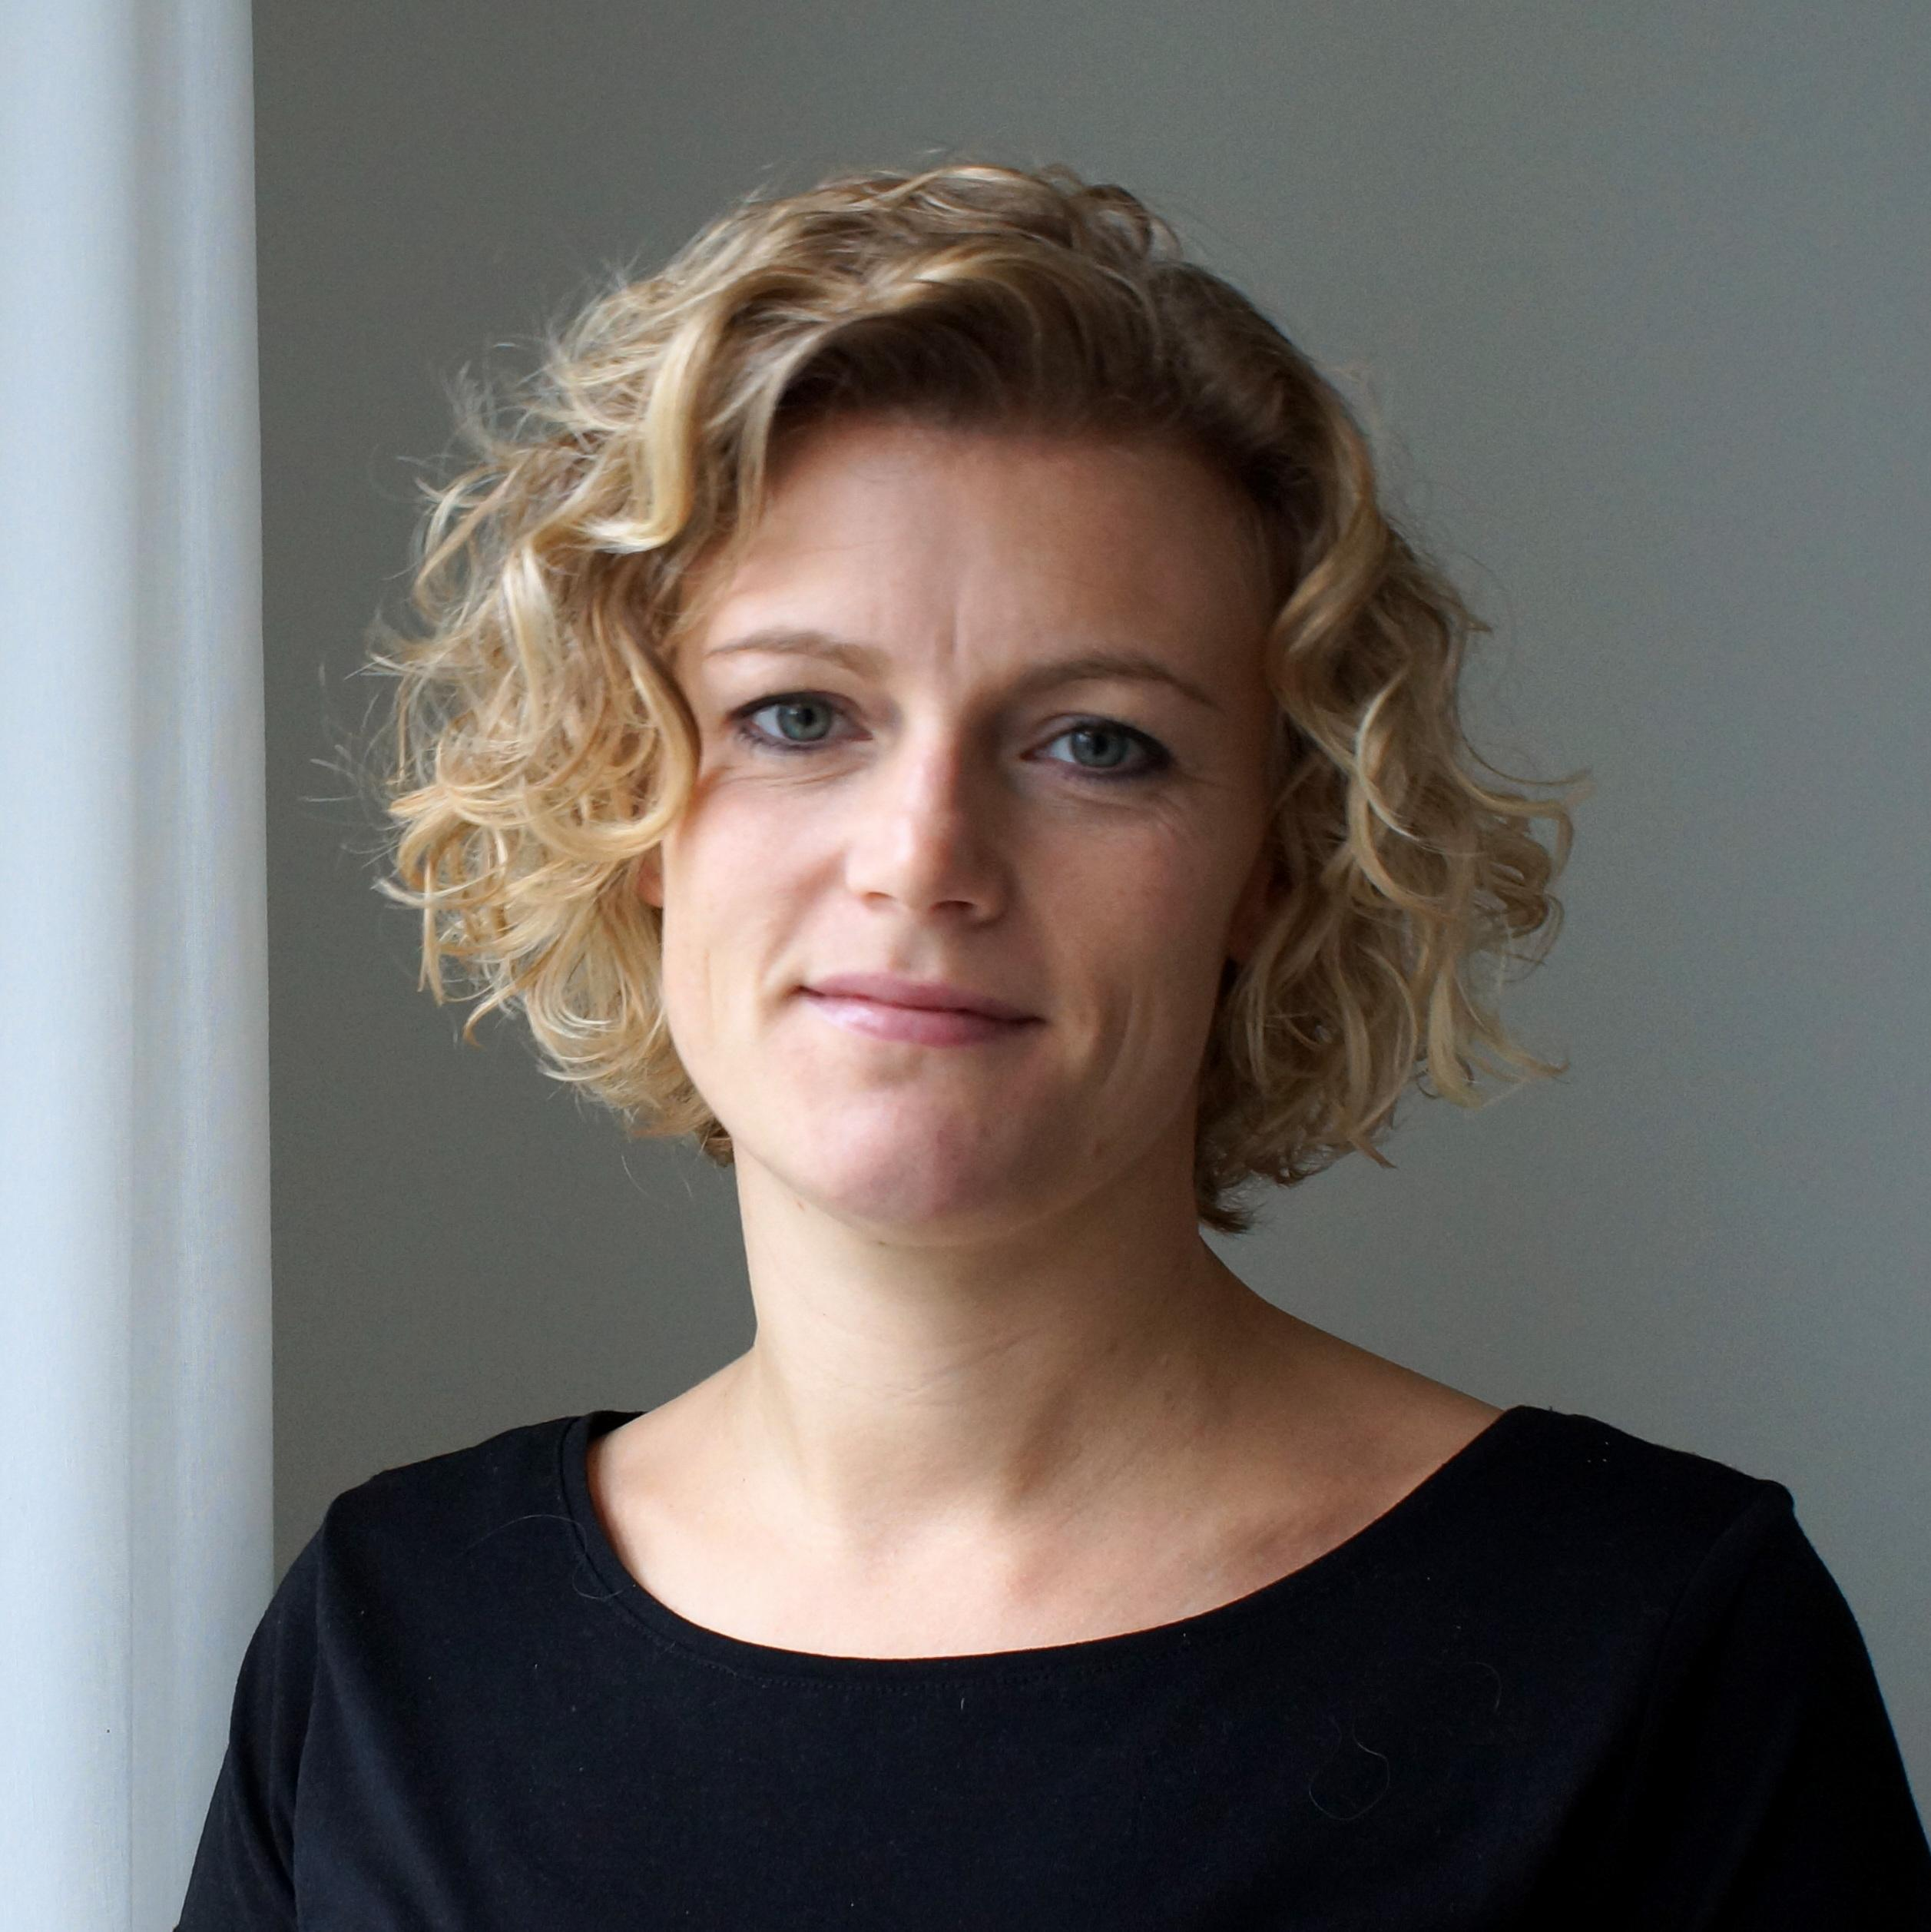 Photo of Camilla Brunsgaard